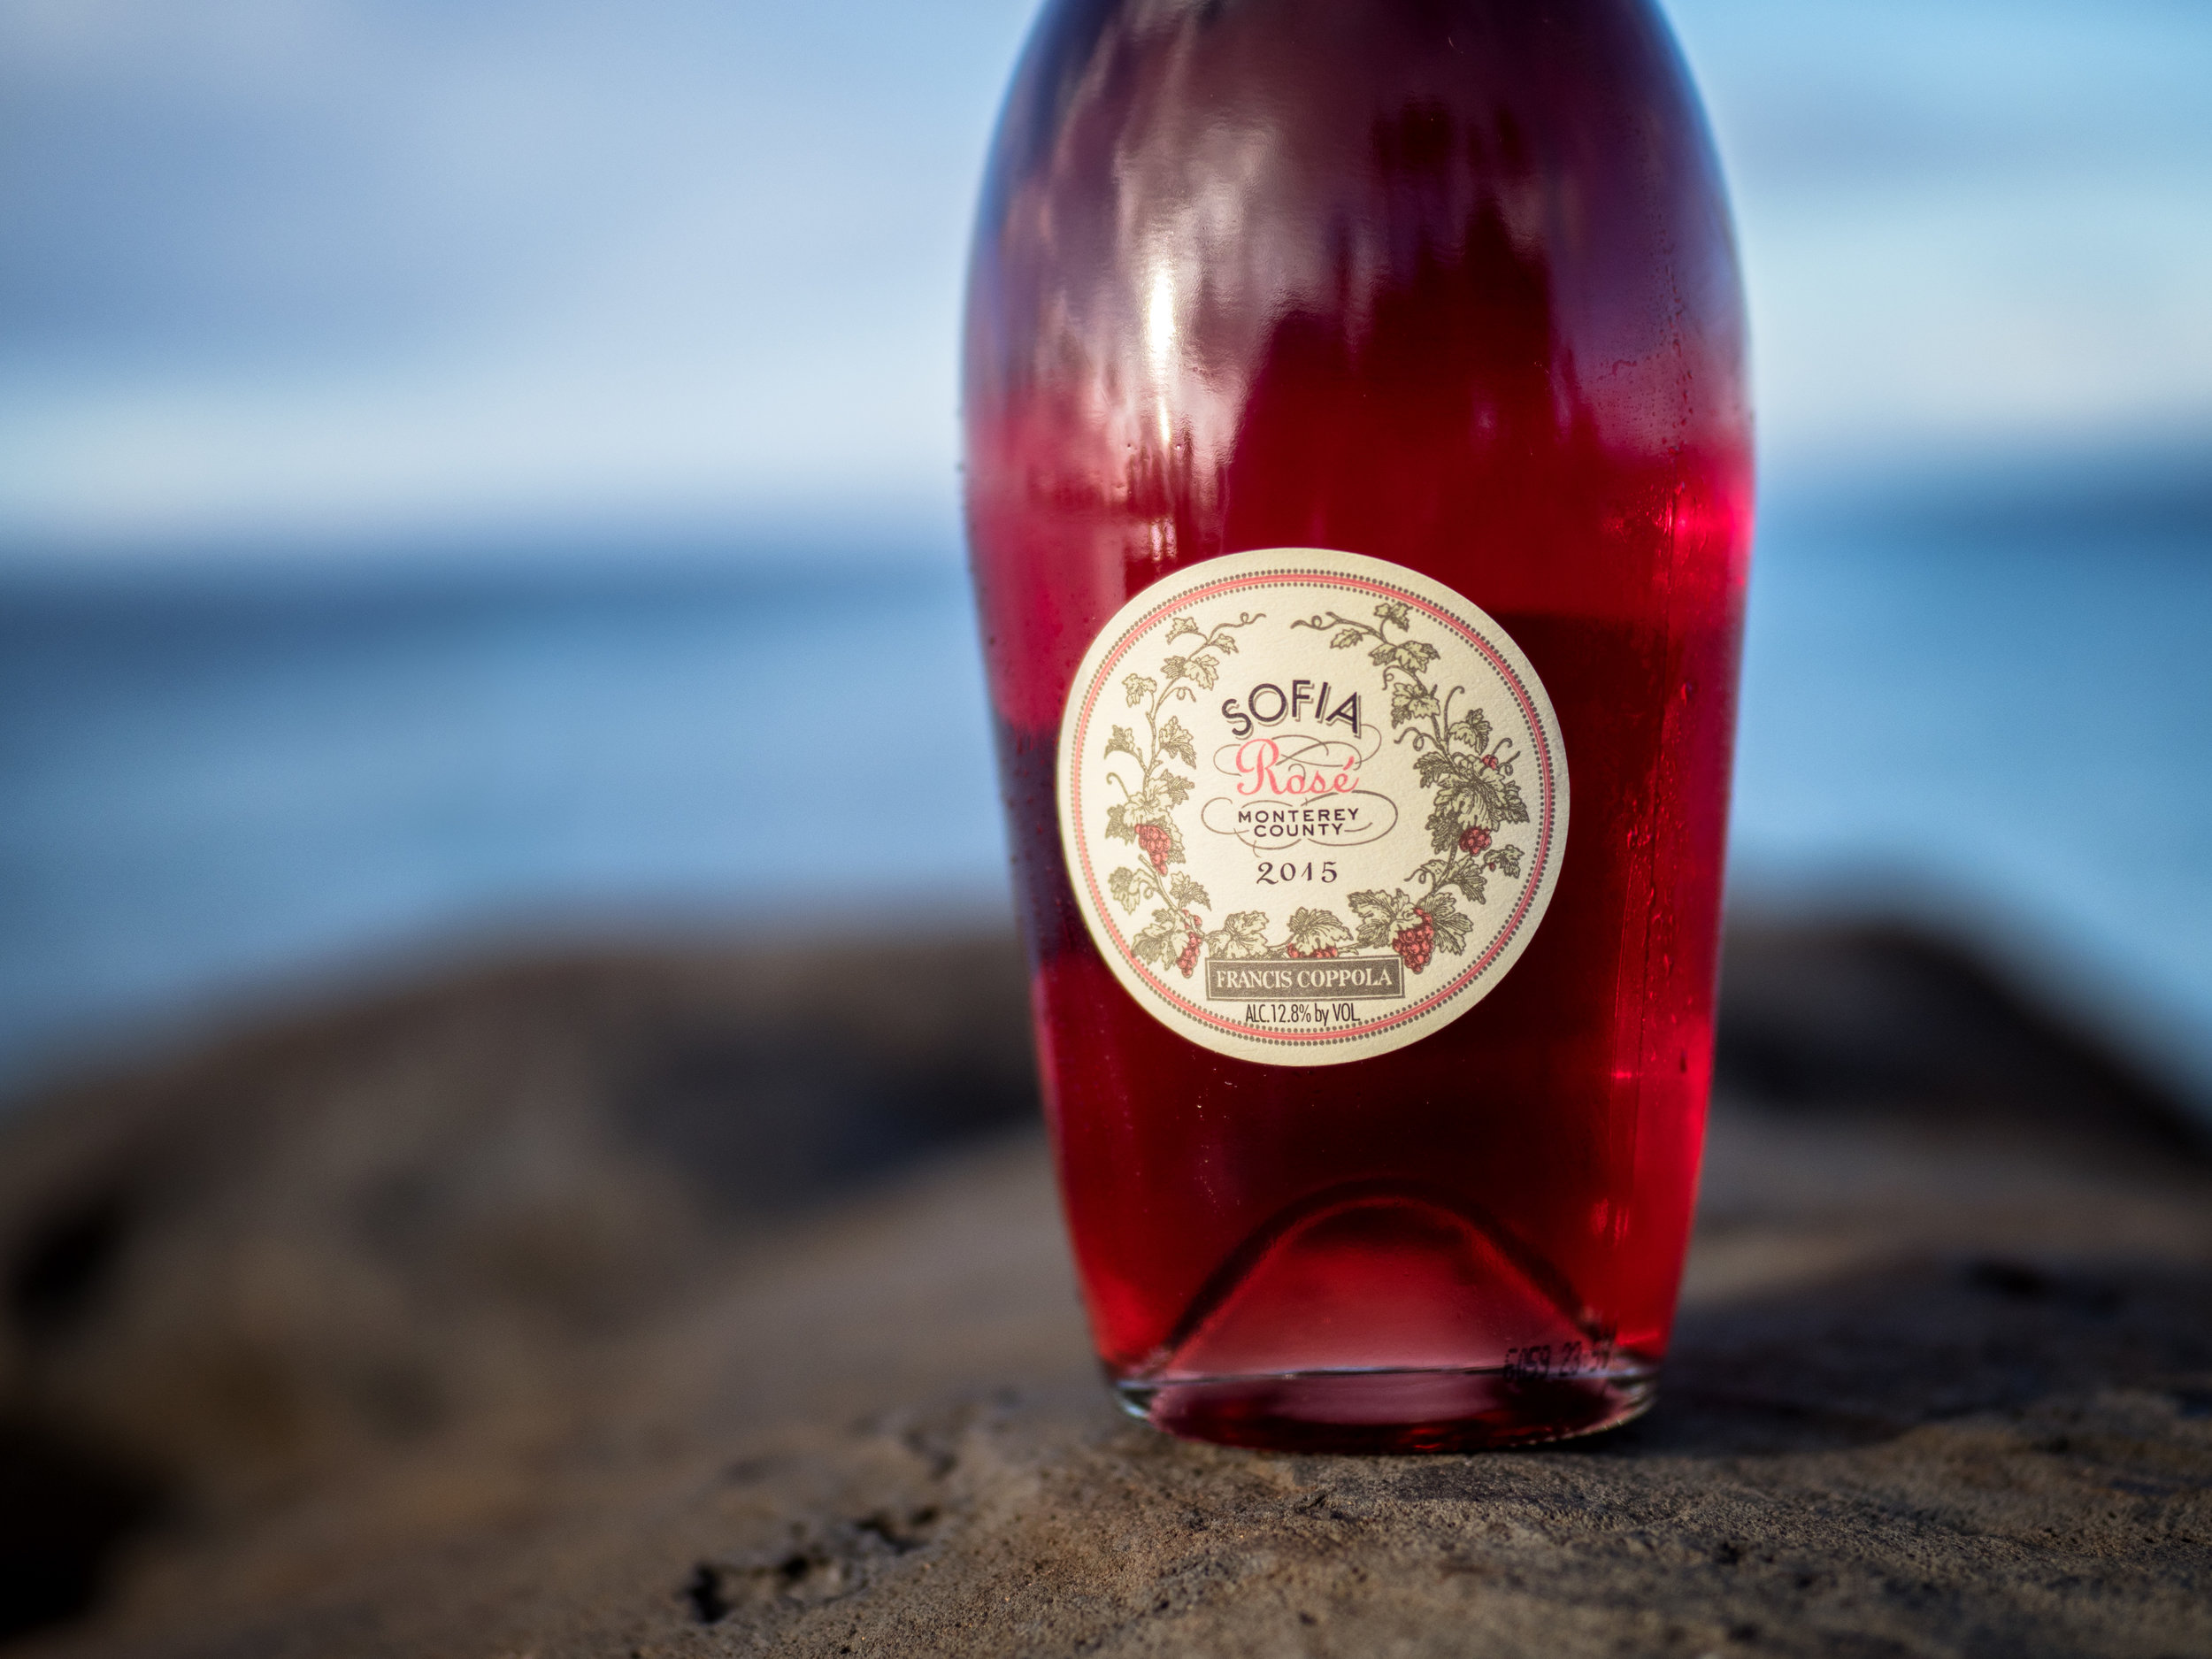 Sofia by the Sea. Even when a rosé is not from Provence, winemakers often use classic Rhône grape varietals to manufacture a similar experience in the glass.